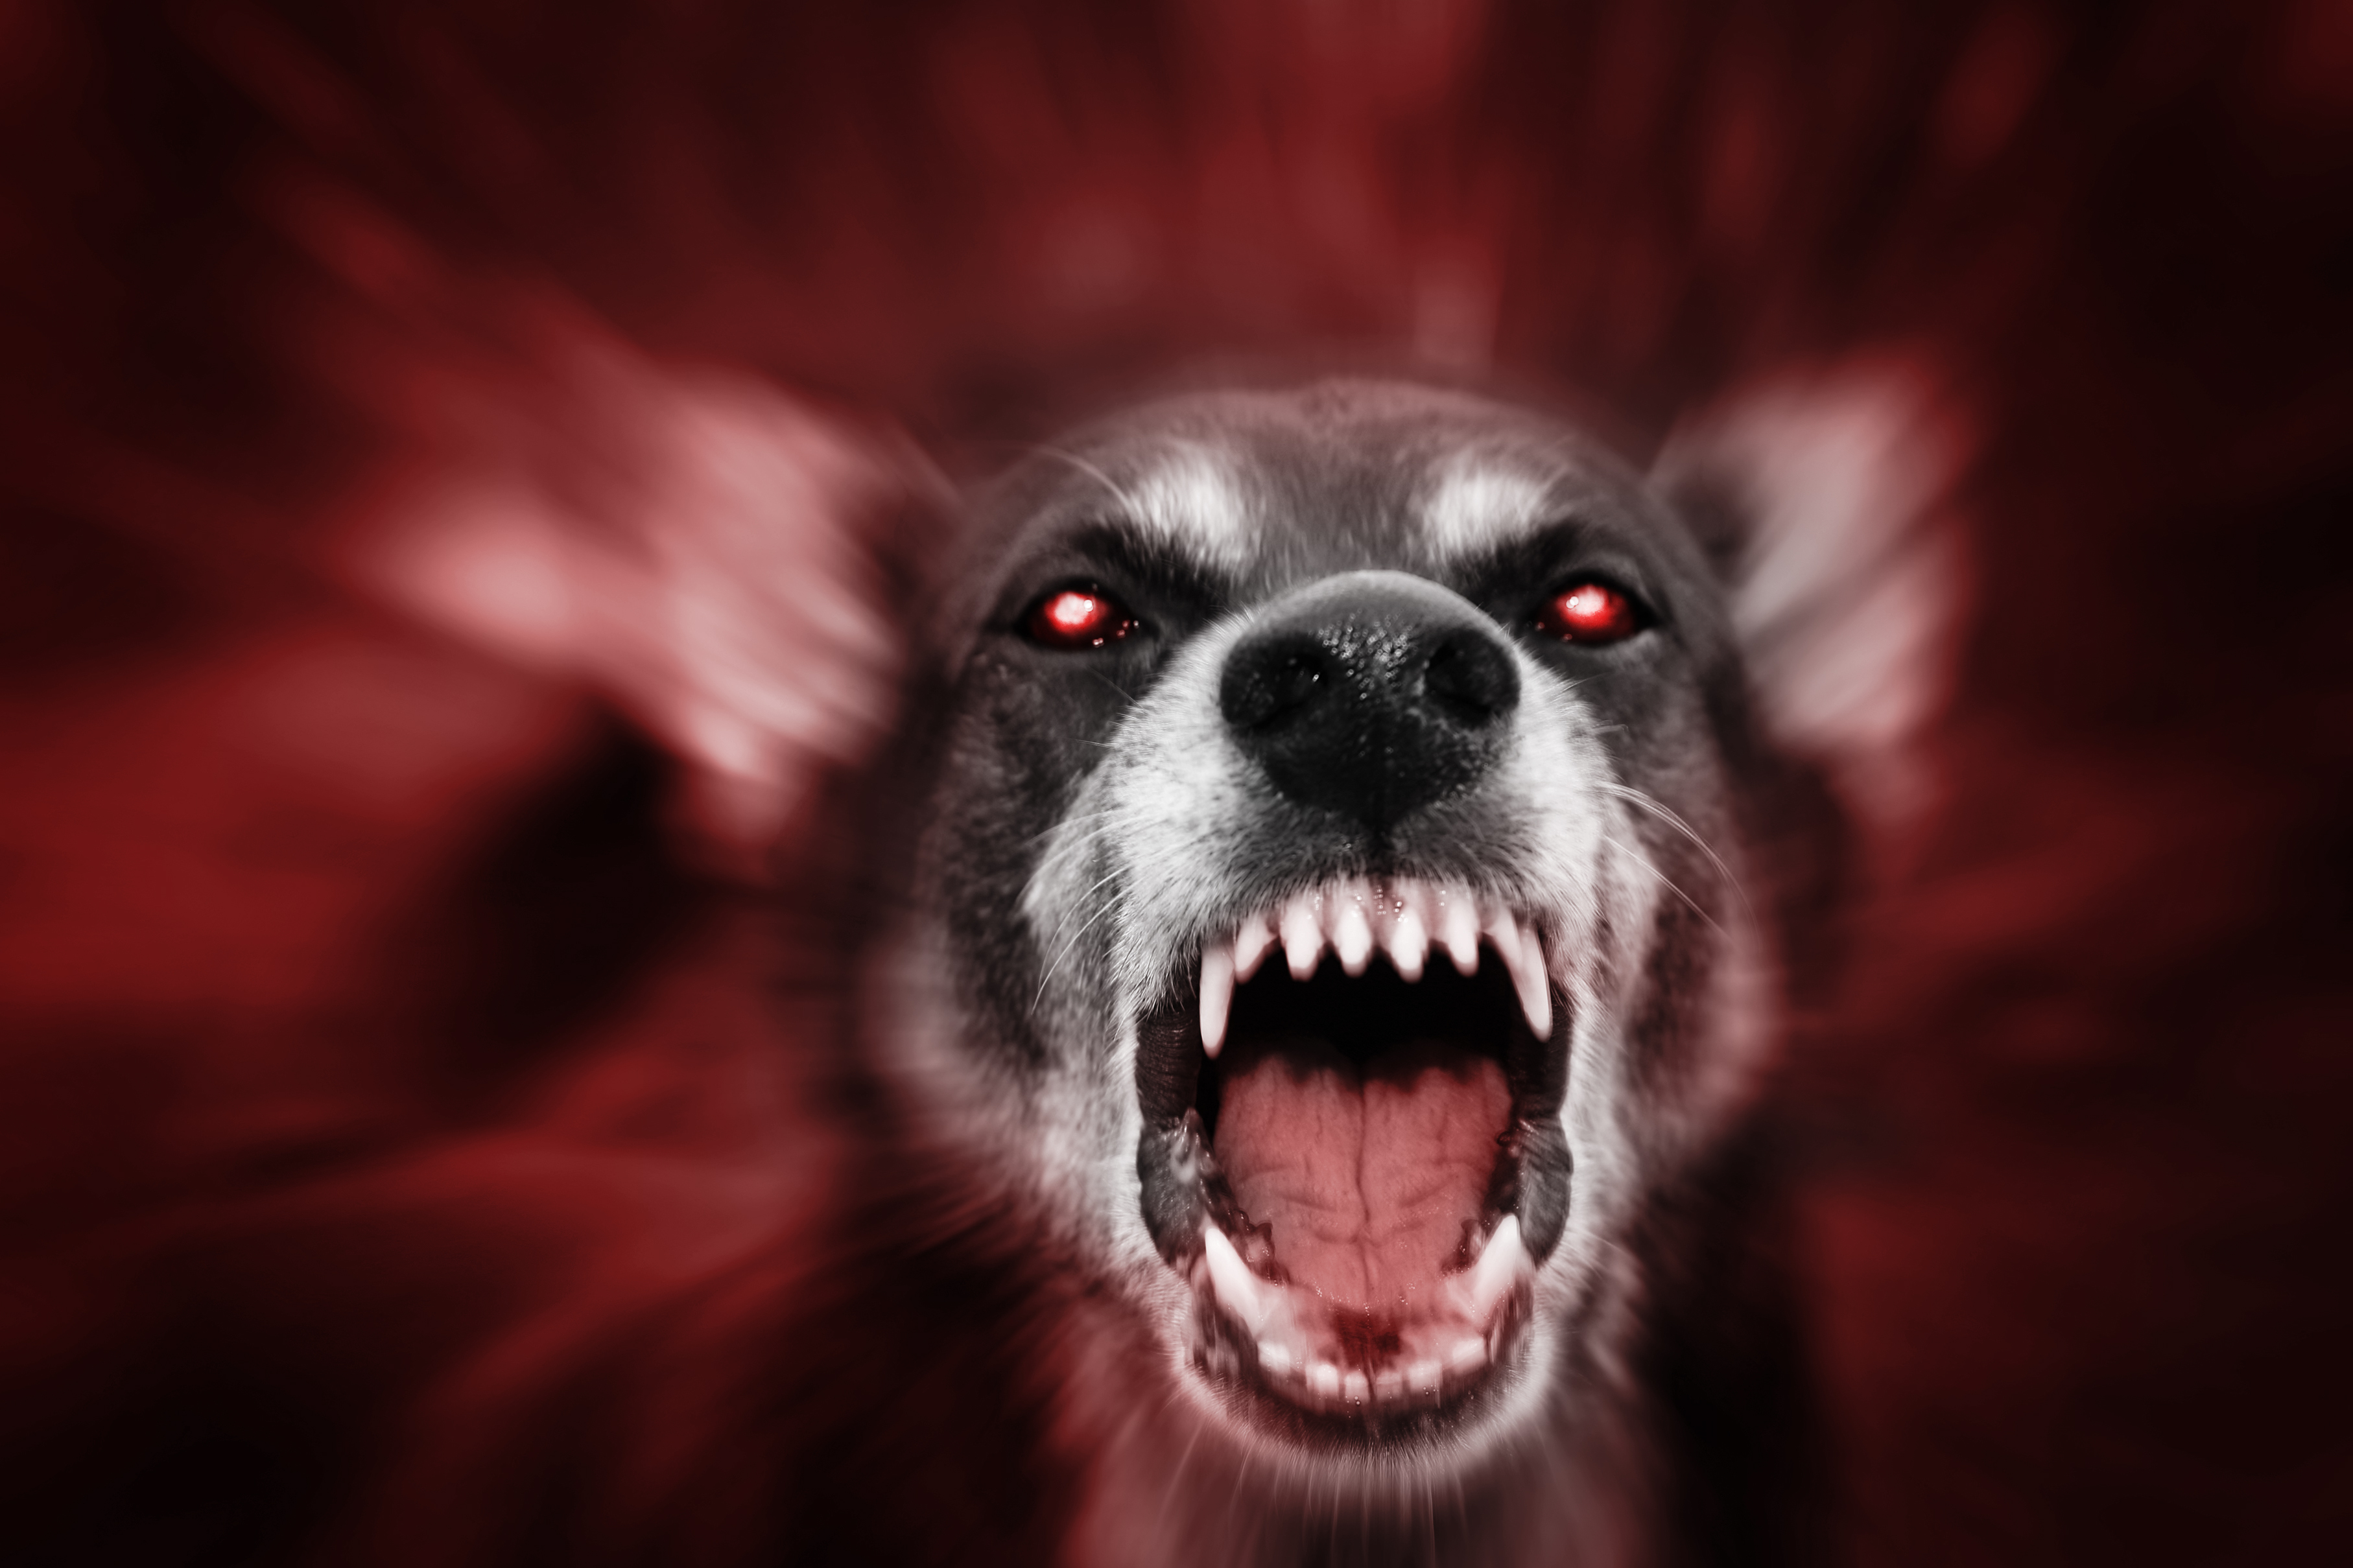 Red glowing eyed dog-like aggressive demonic attacking beast, incarnation of evil, fear and hereafter.